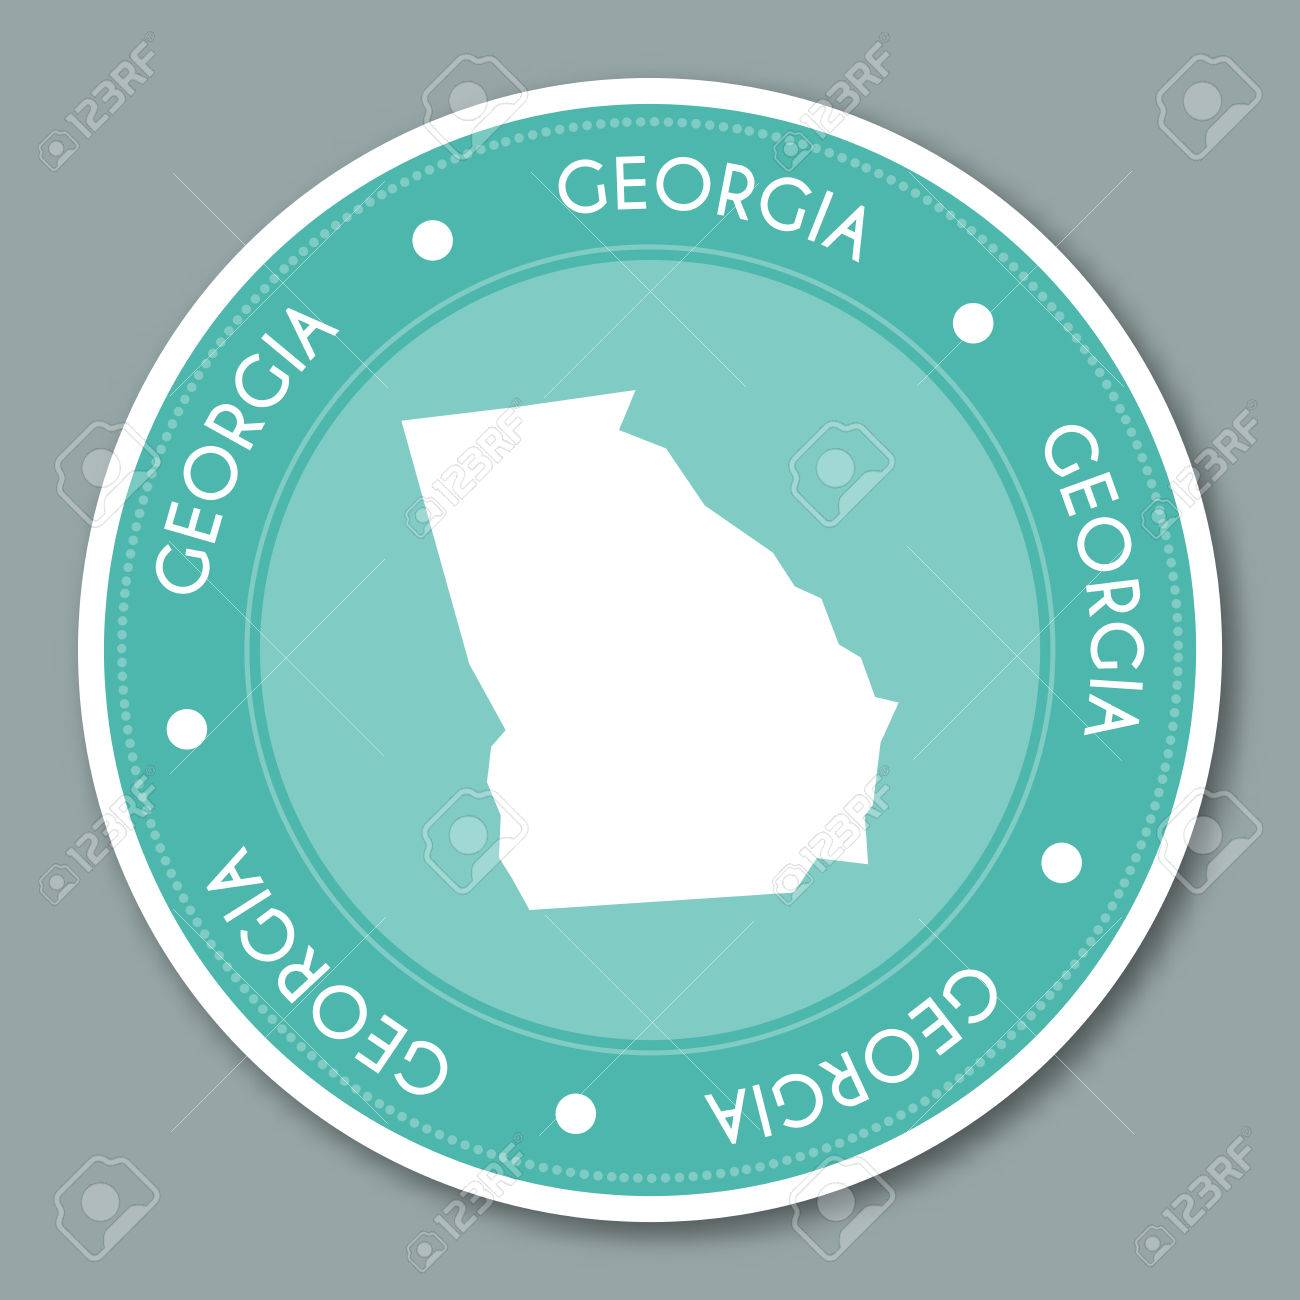 Us States In Alphabetical Order Game Fix The Us Map Quiz - Us map label game